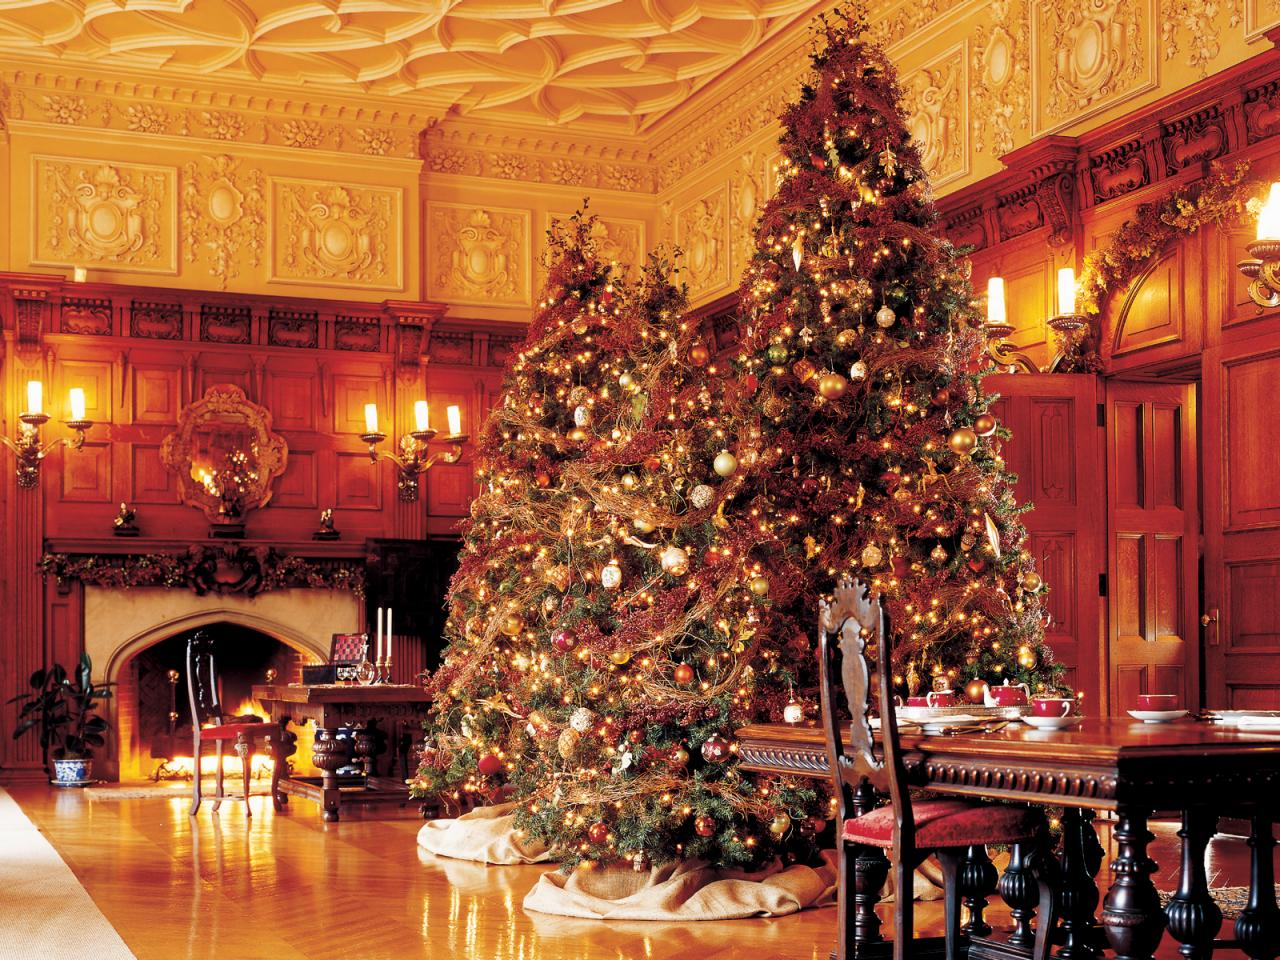 stay warm cozy this holiday season - The Dining Room Biltmore Estate